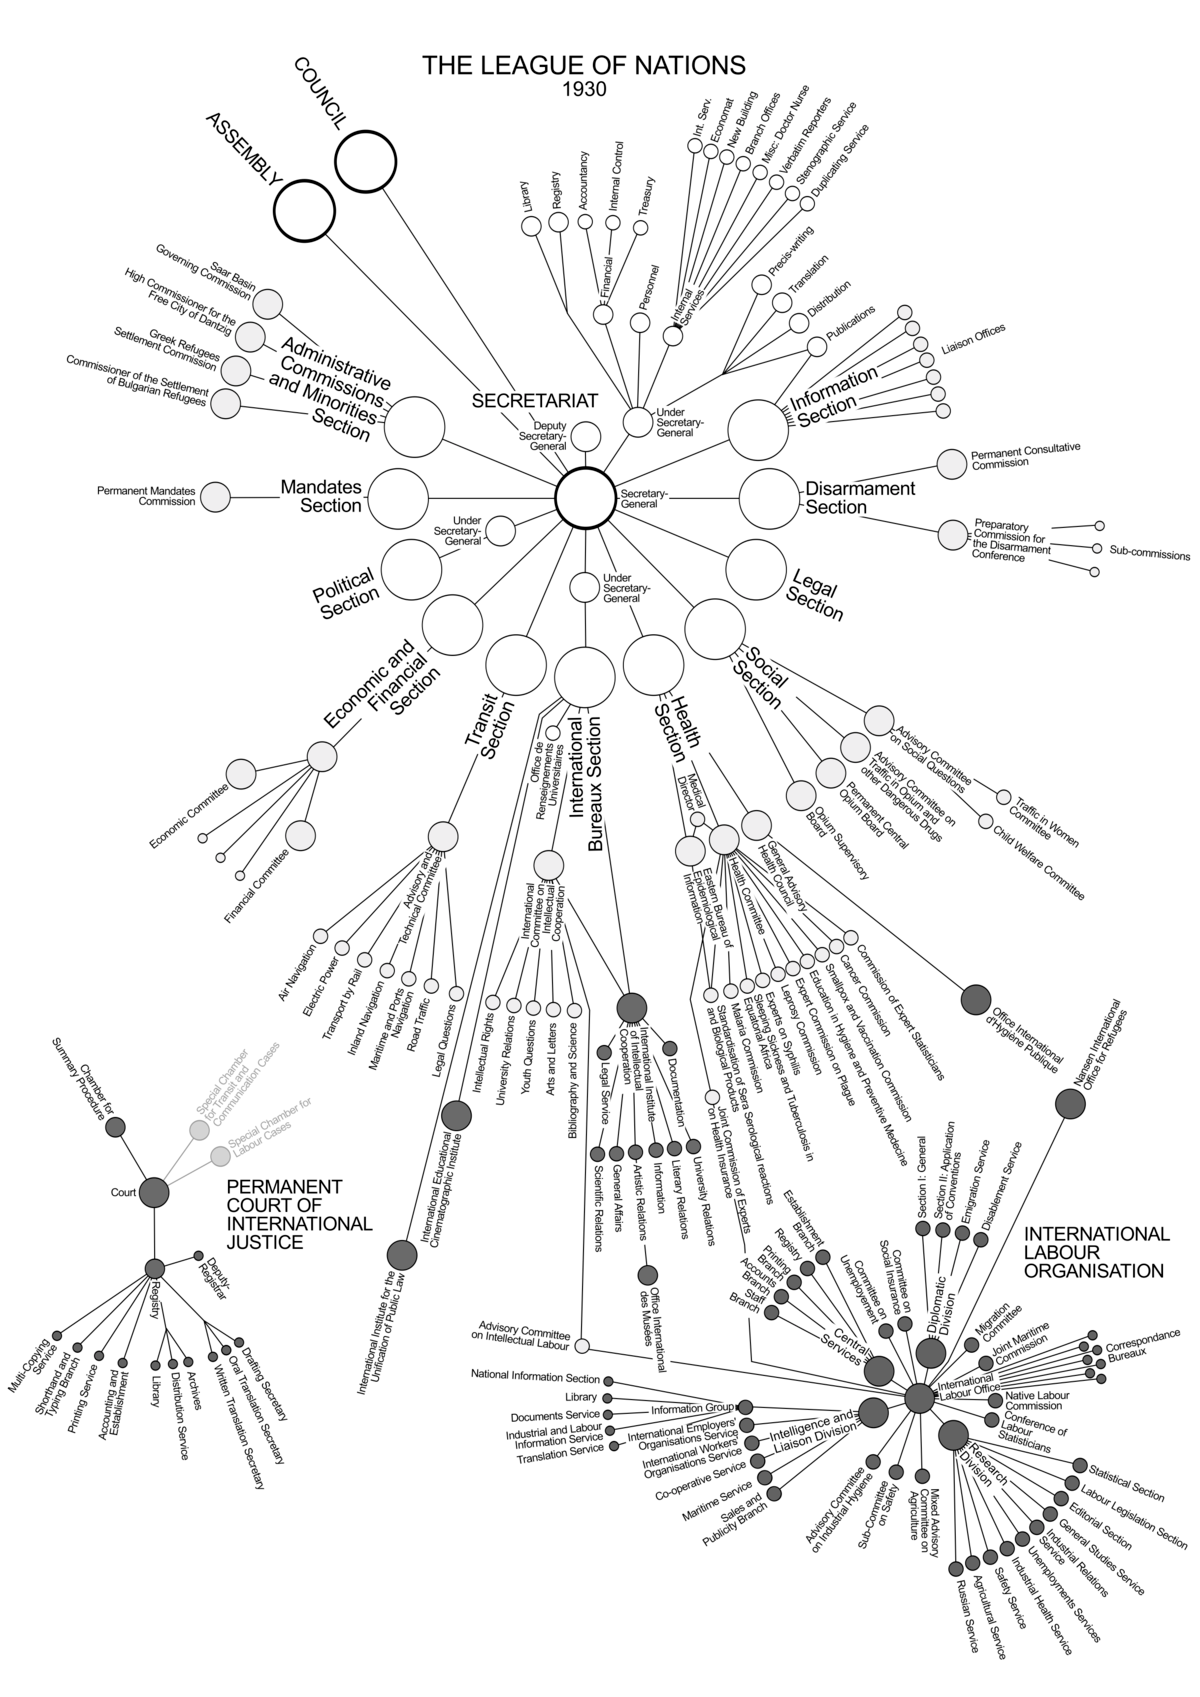 human evolution tree diagram ford falcon au wiring organisation of the league nations - wikipedia